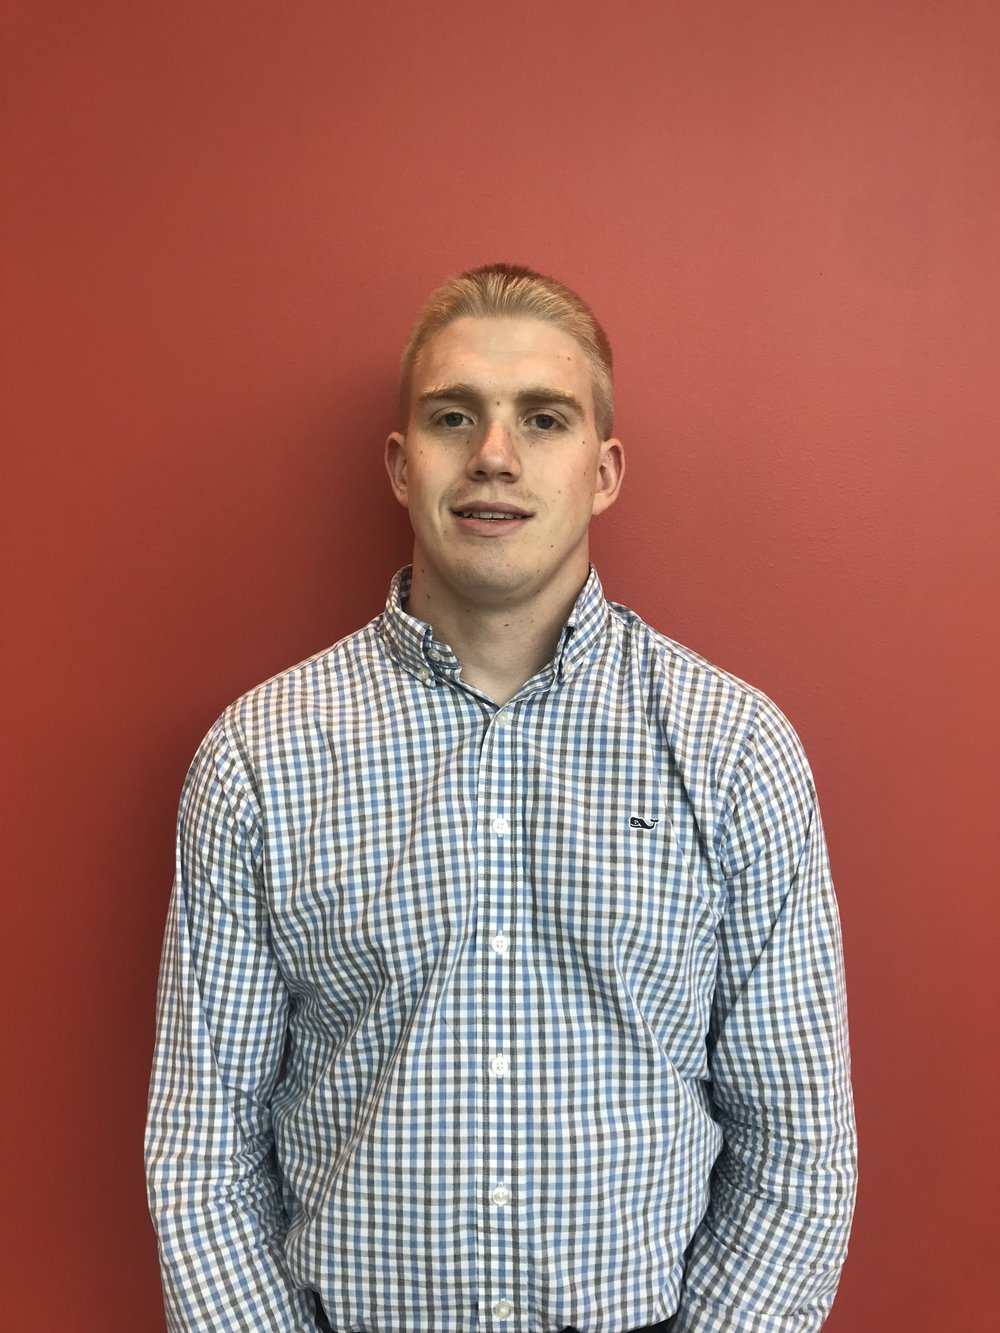 Michael is a senior at the University of Pittsburgh majoring in Finance. He enjoys skiing, hunting, and golfing. Mike is also a part of Pitt's PEVC club and Panther Equity. After graduation, Mike hopes to find a job in the capital markets industry or in portfolio management.